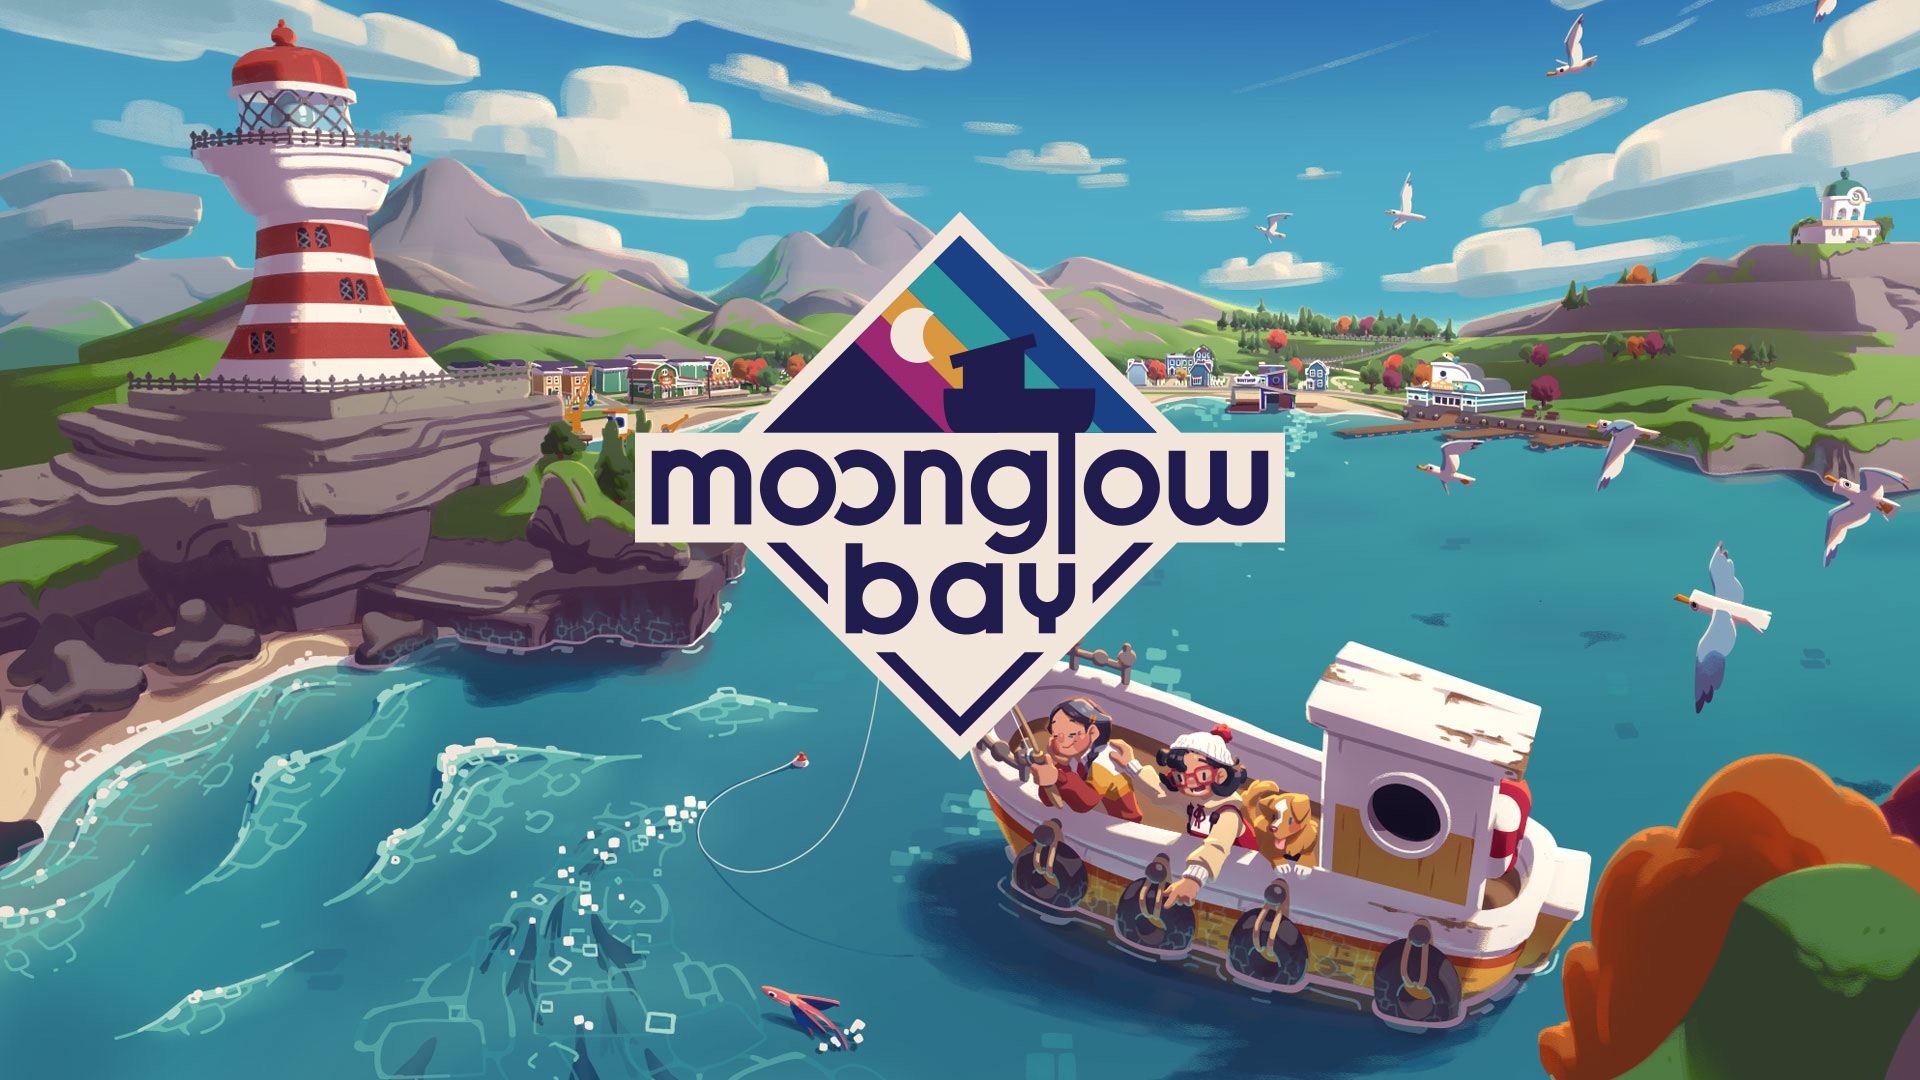 Moonglow Bay announced for Xbox Games Pass